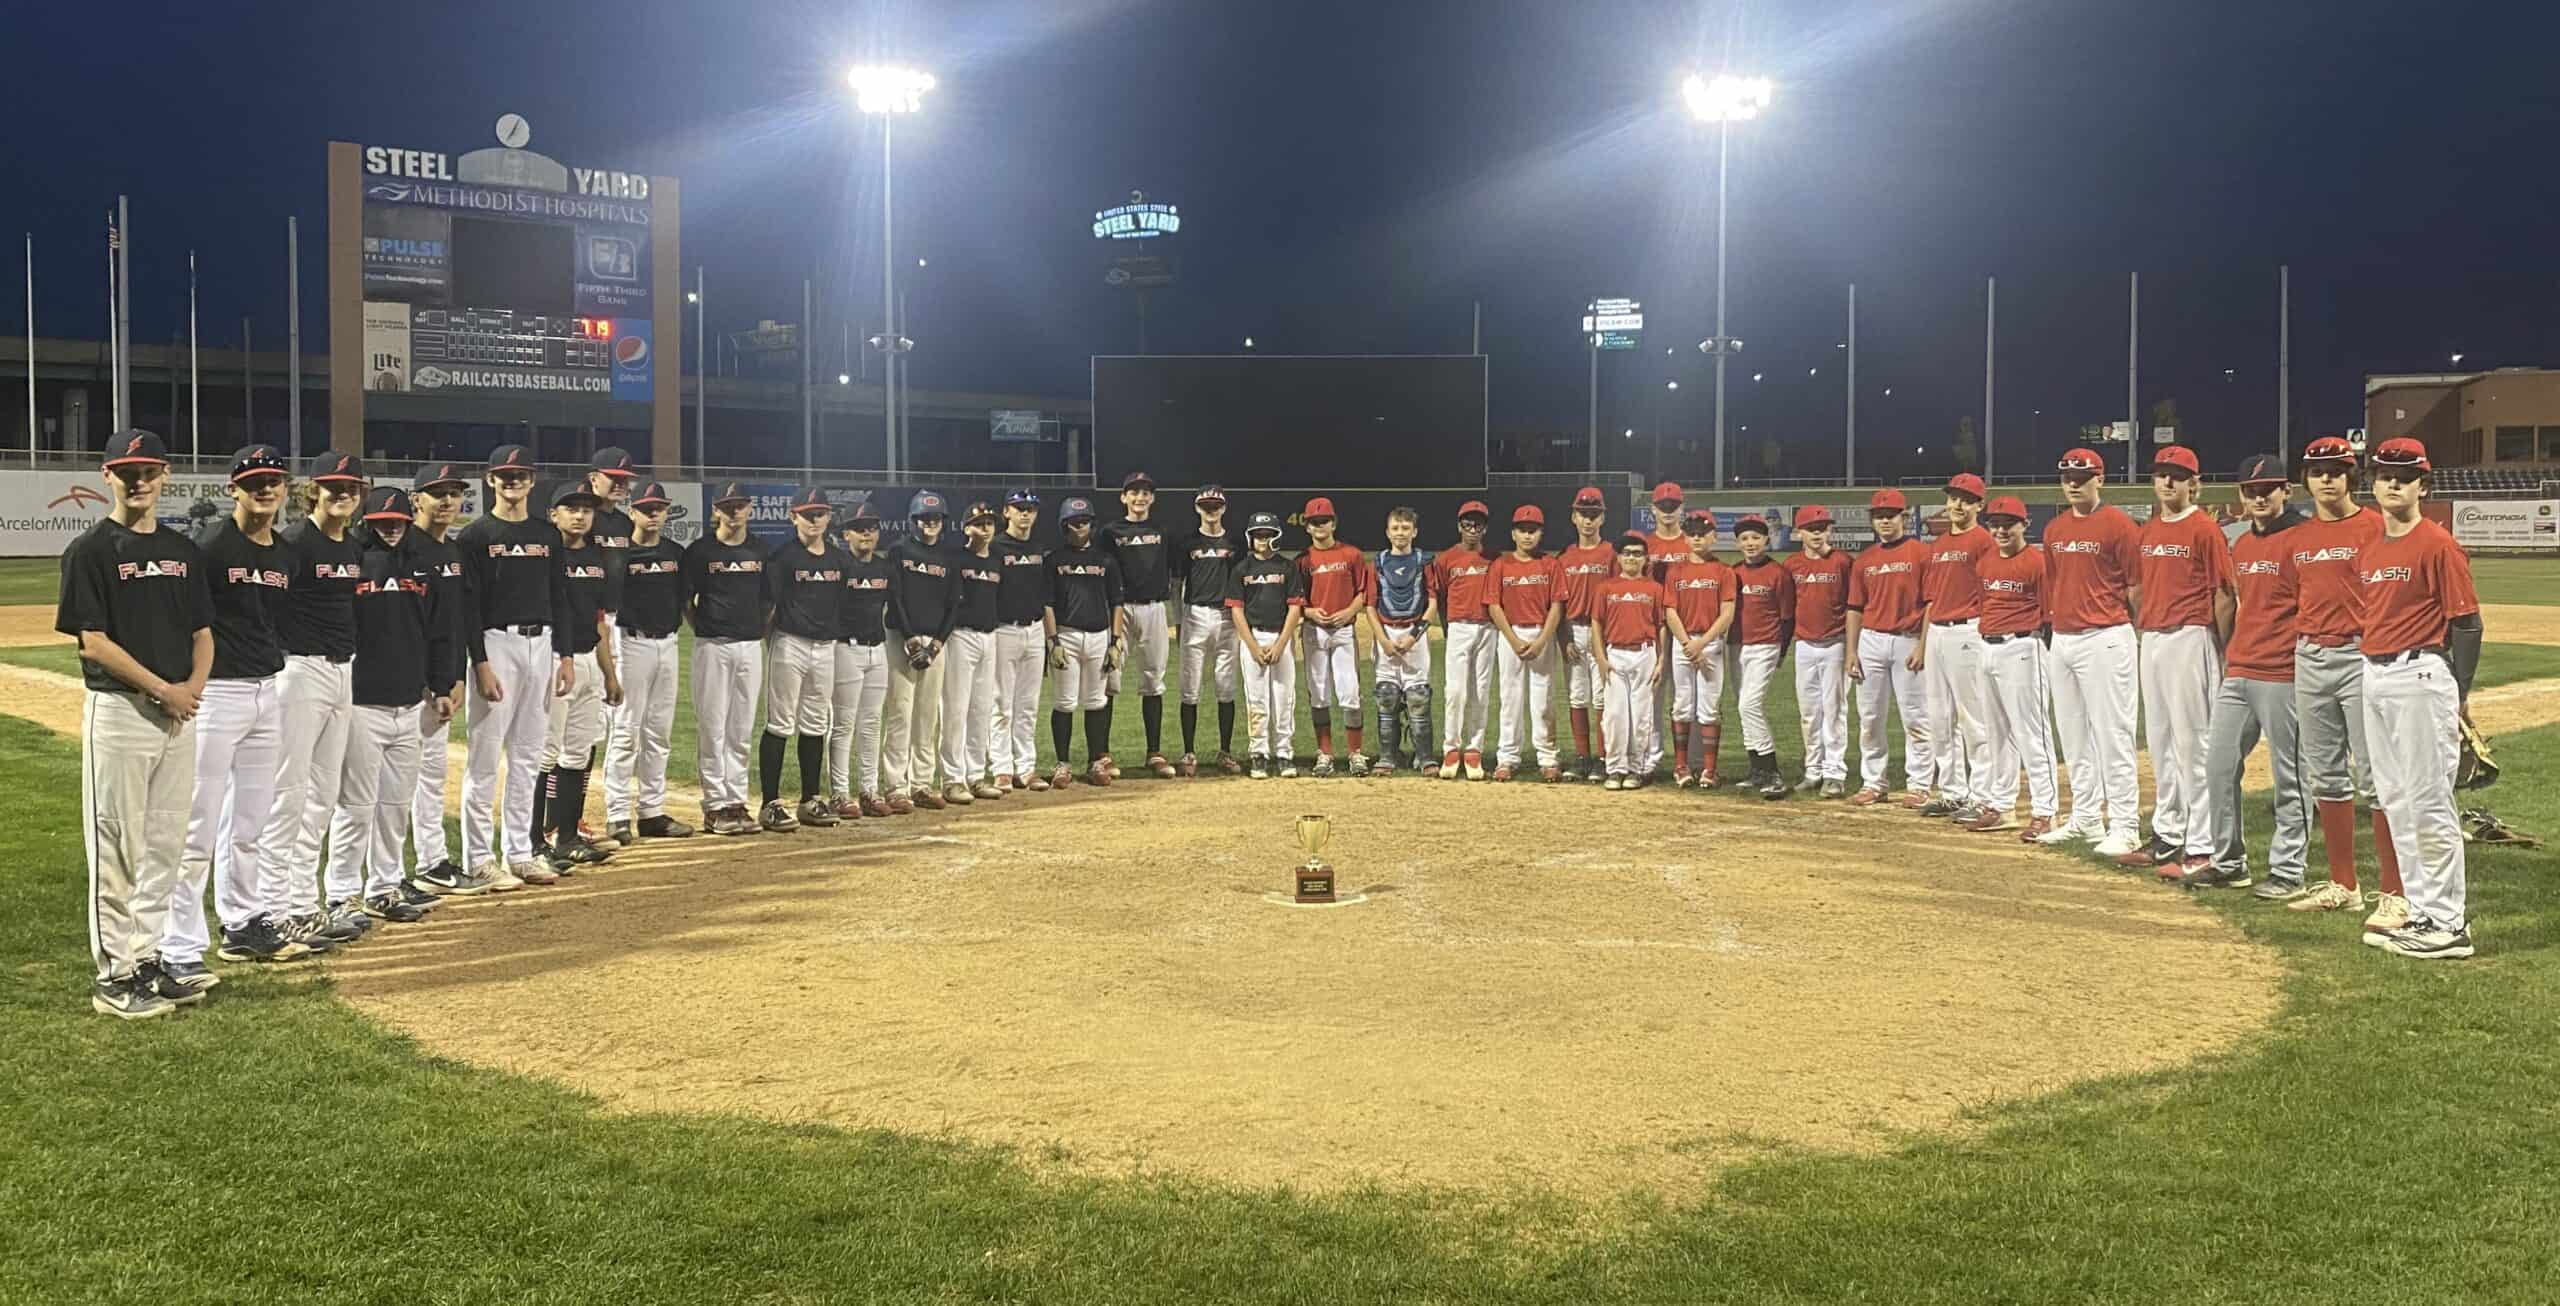 Flash red and black baseball teams standing around the trophy cup on a baseball field